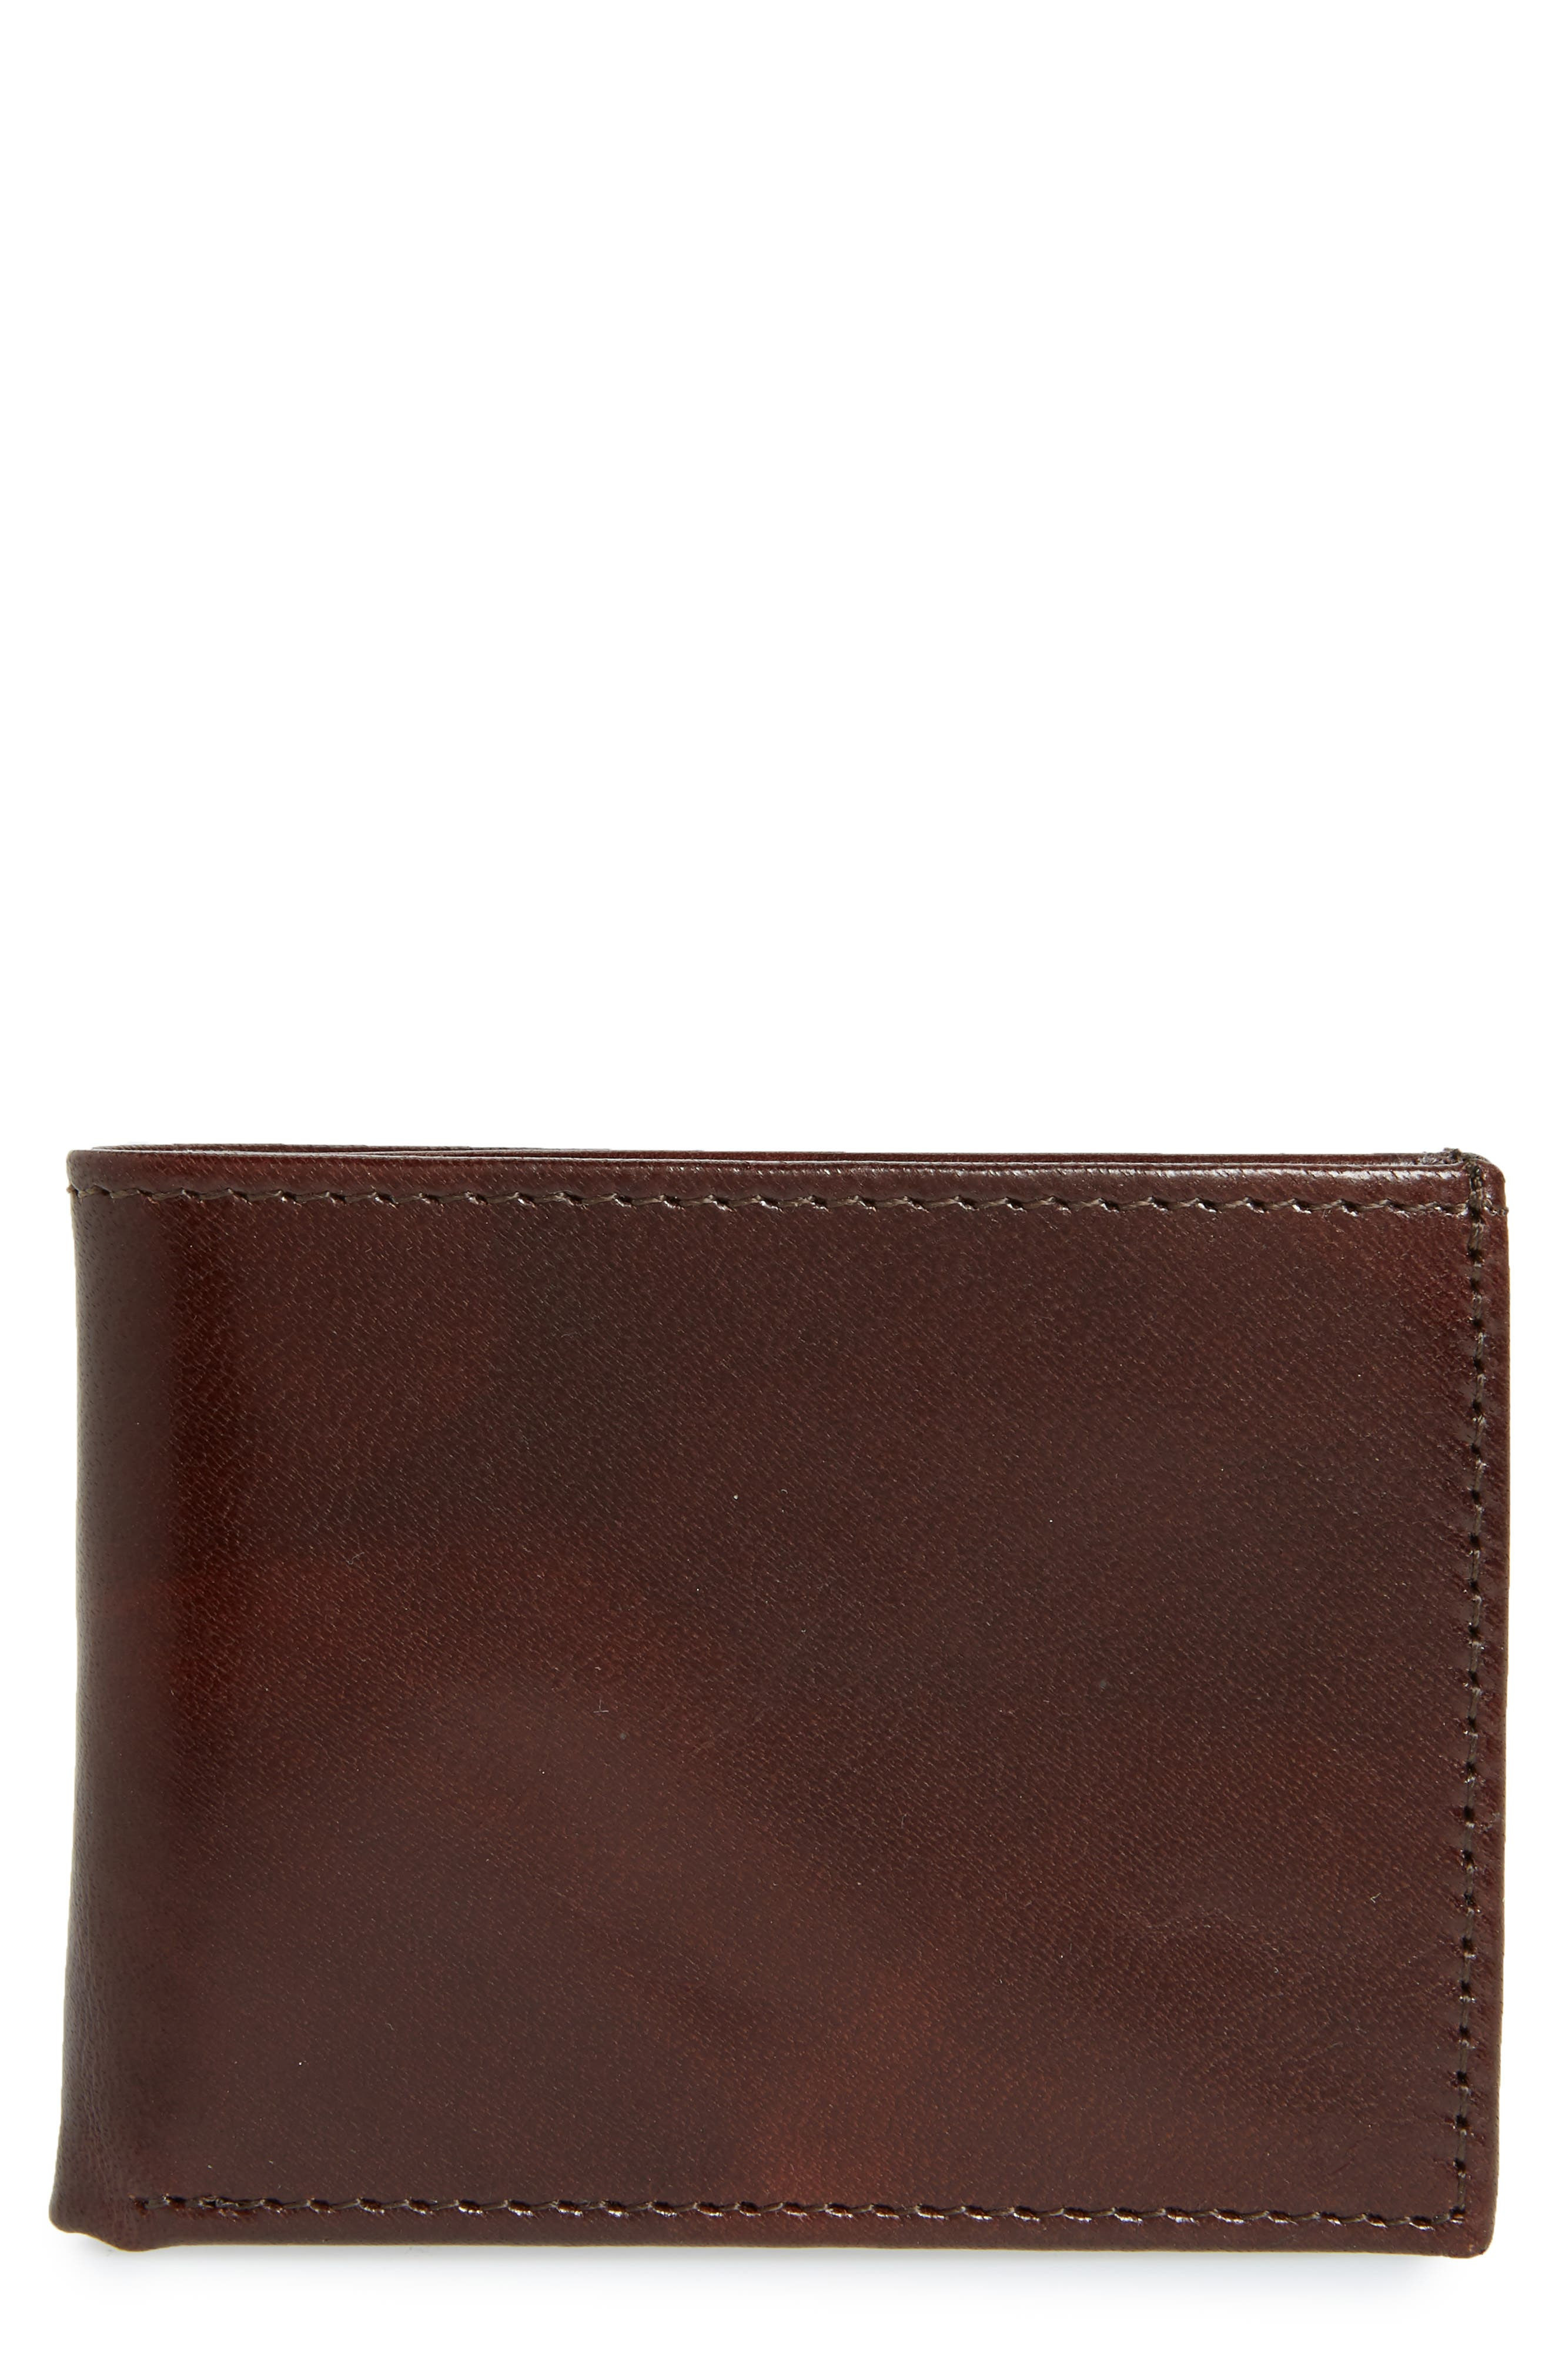 Leather Wallet,                             Main thumbnail 1, color,                             Brown